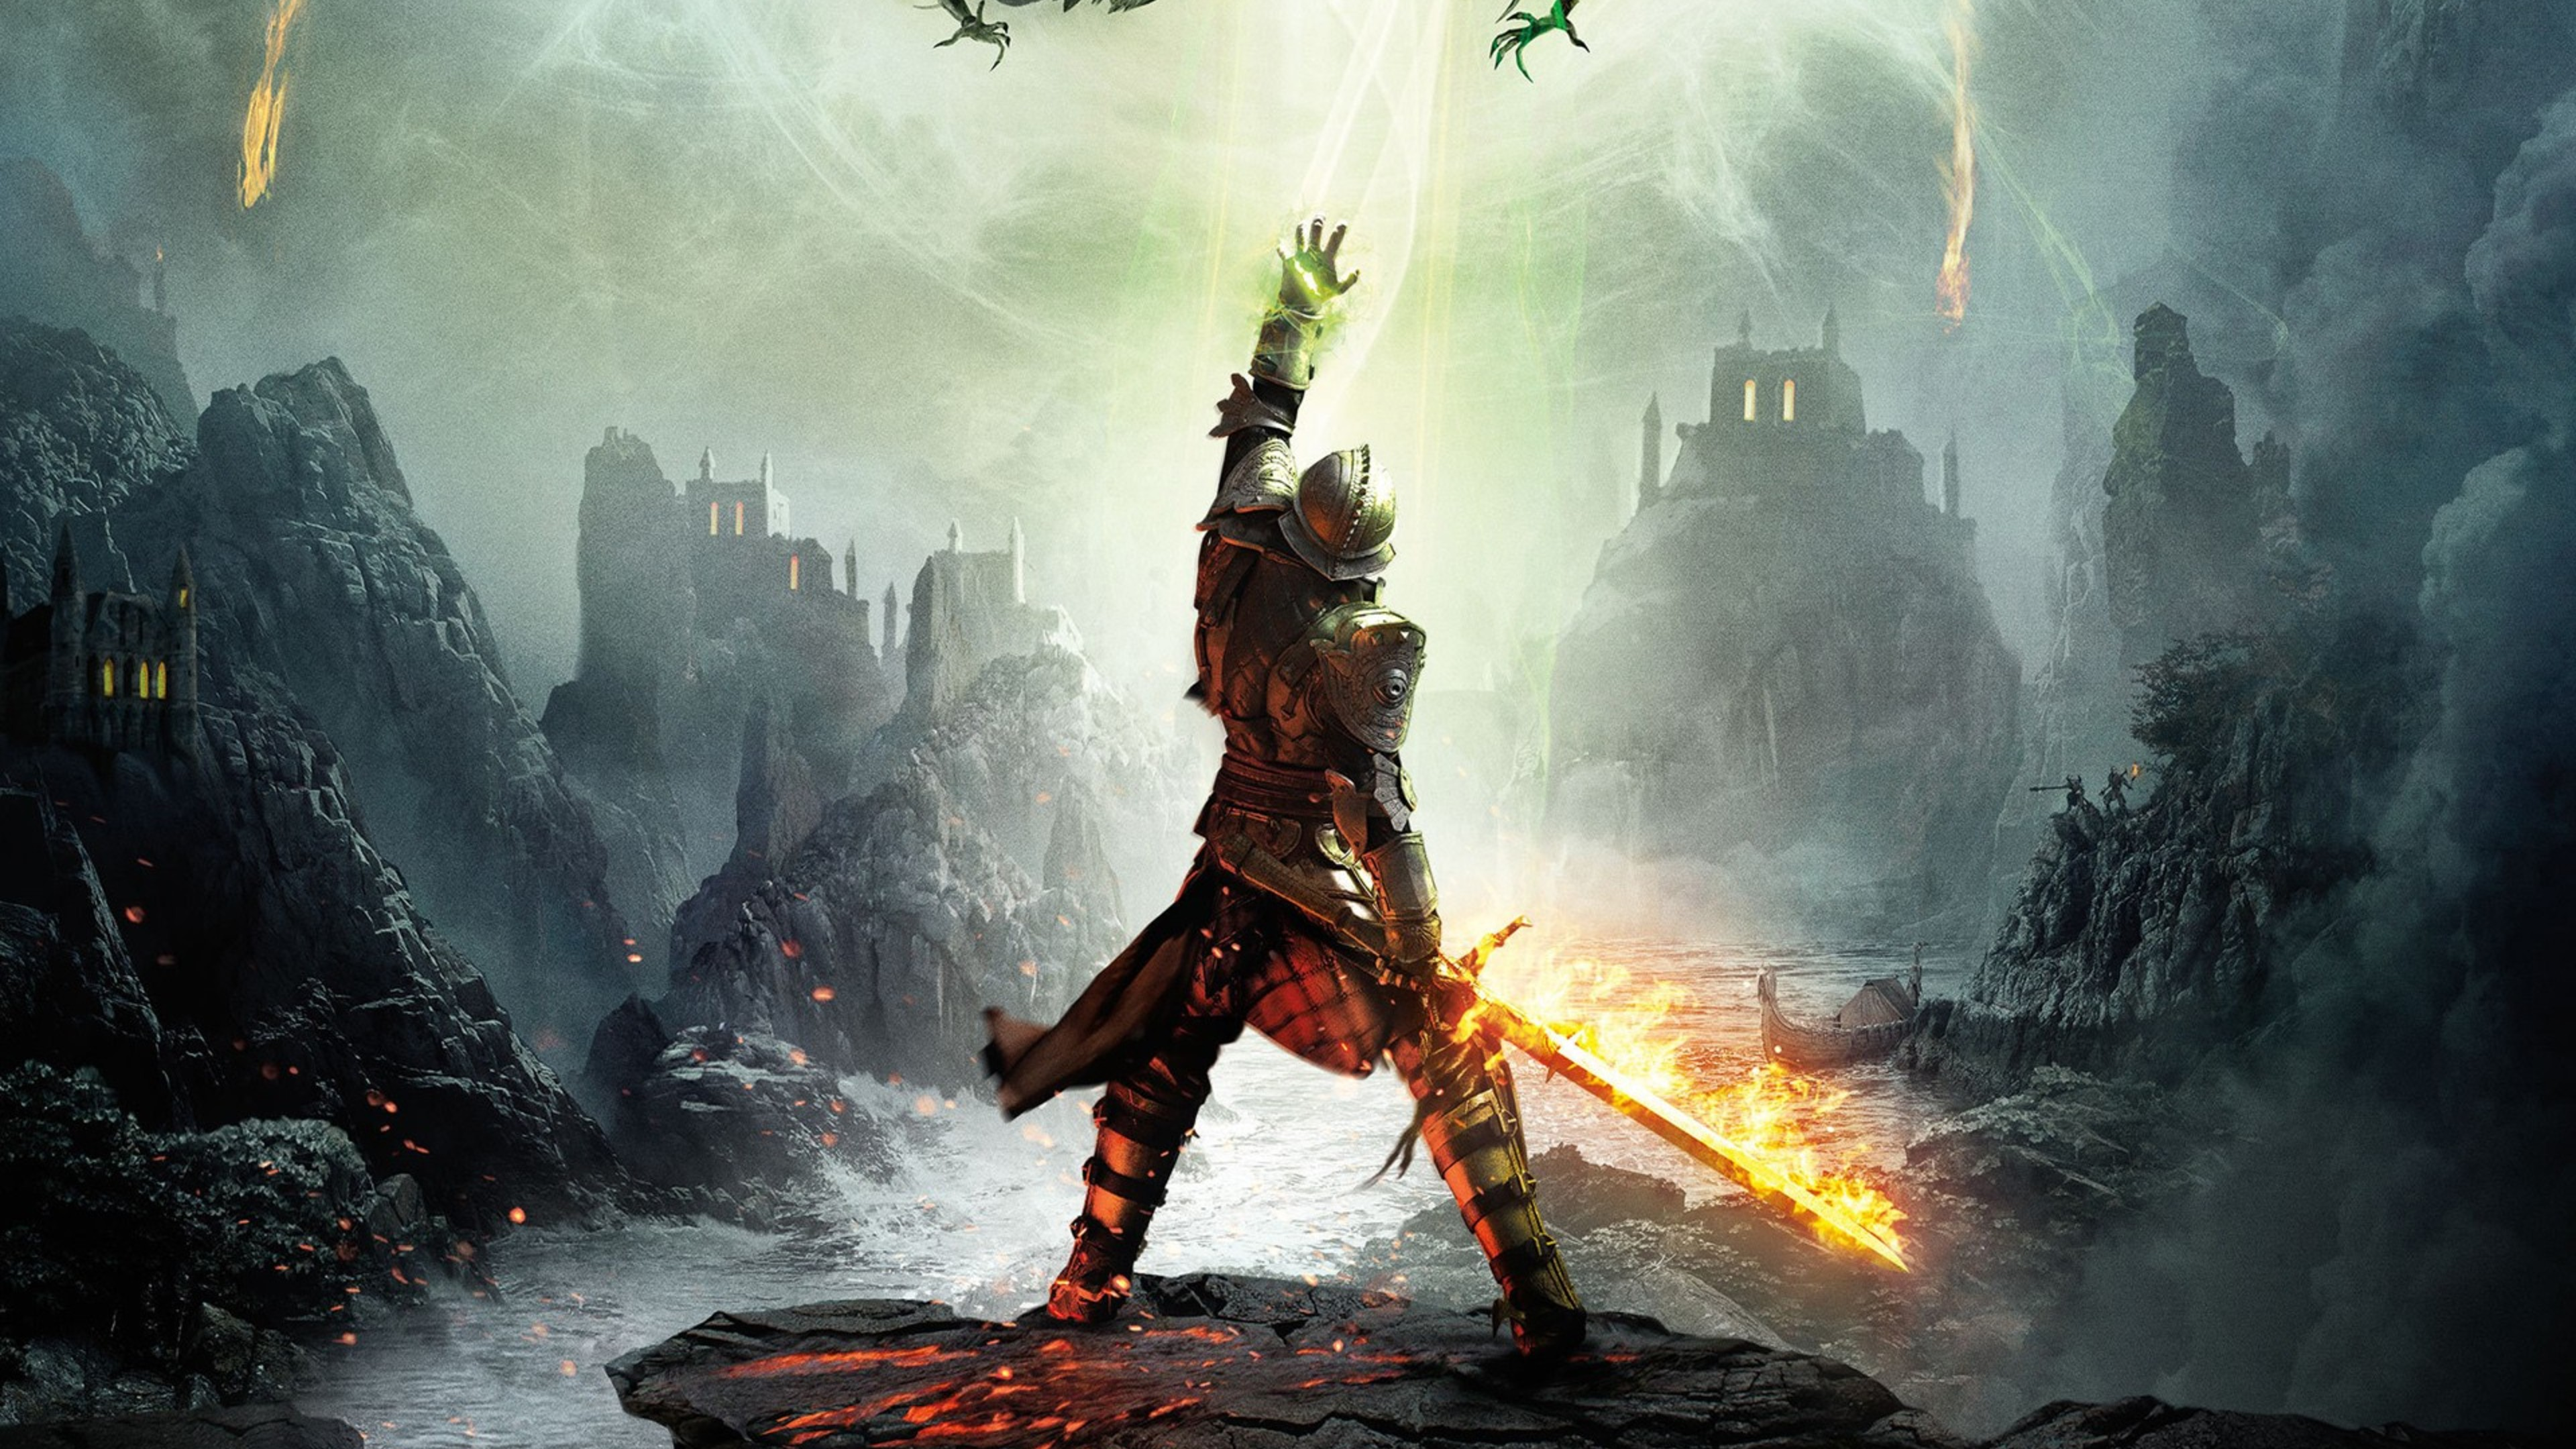 Wallpaper 4k Dragon Age Inquisition Dragon Age Inquisition